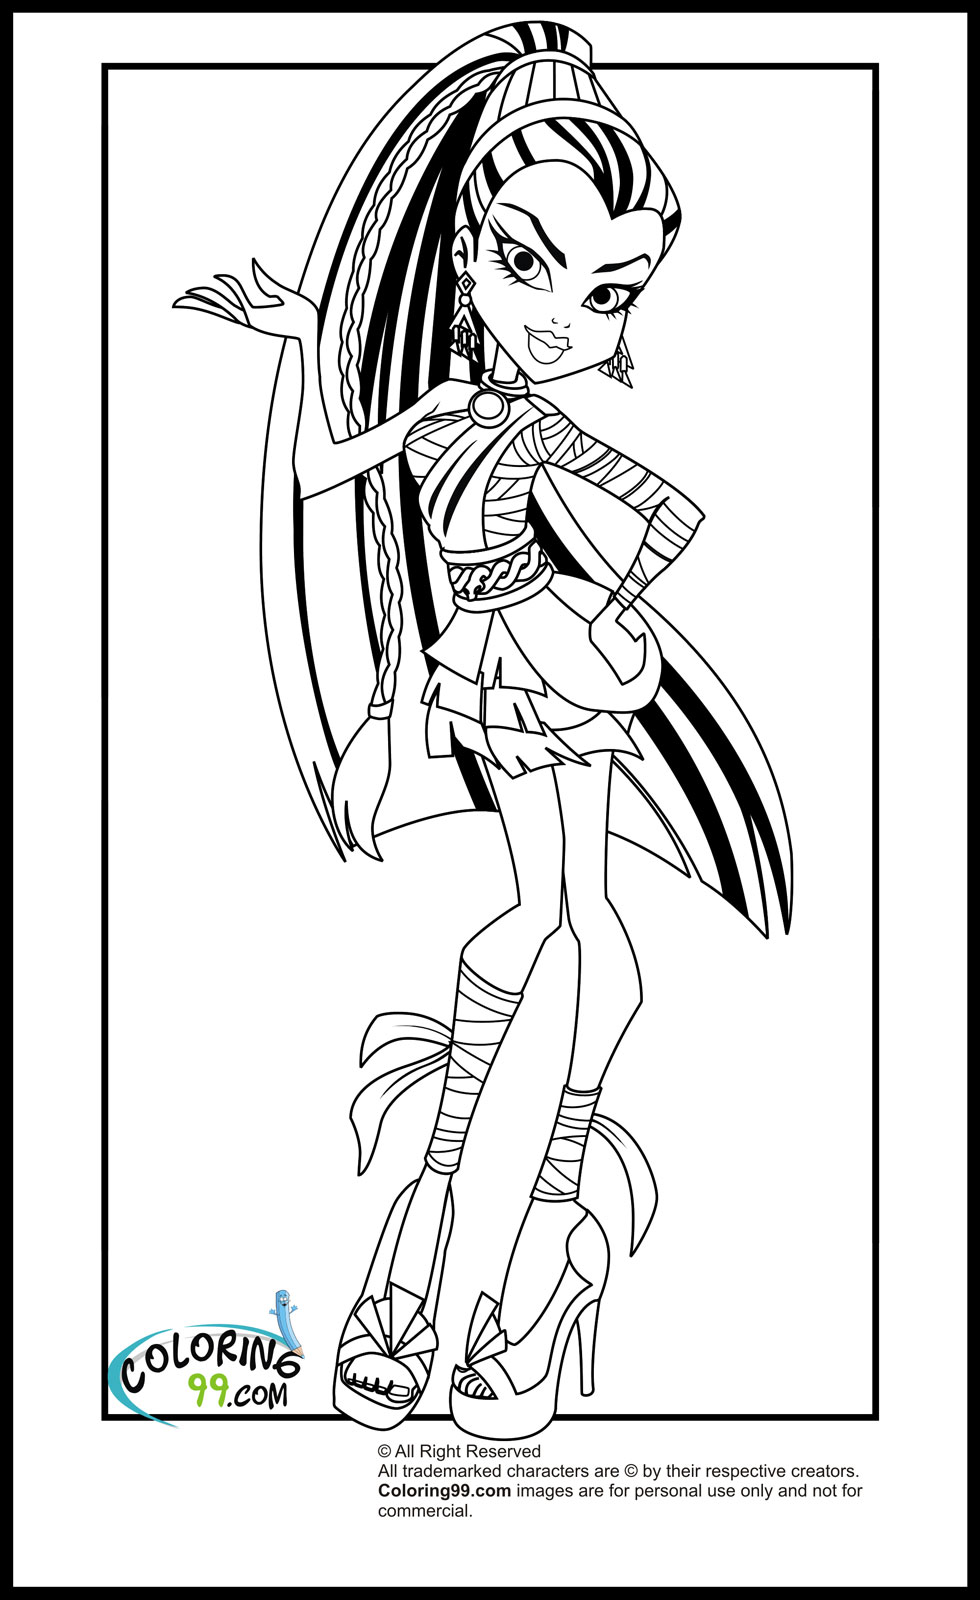 free monster high coloring pages to print coloring pages monster high coloring pages free and printable coloring to free high pages monster print